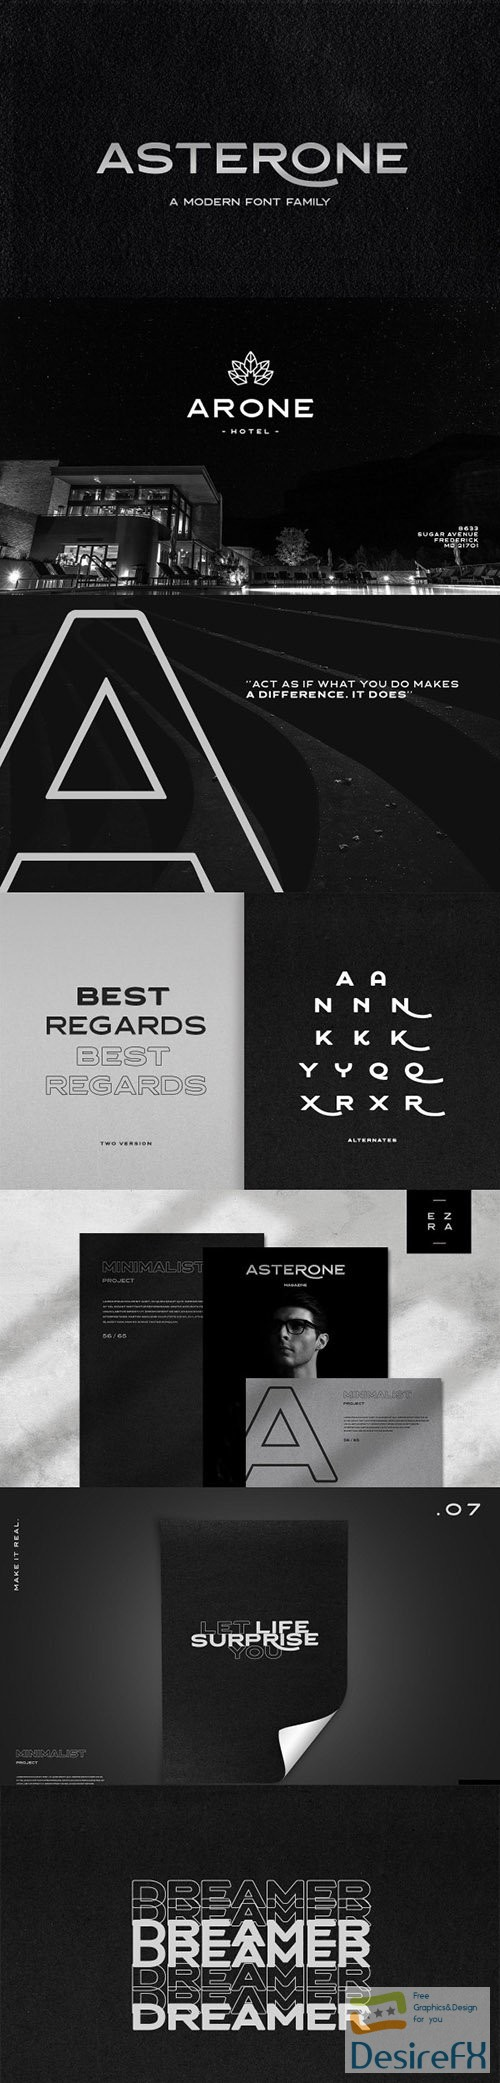 fonts - Asterone - Modern Font Family